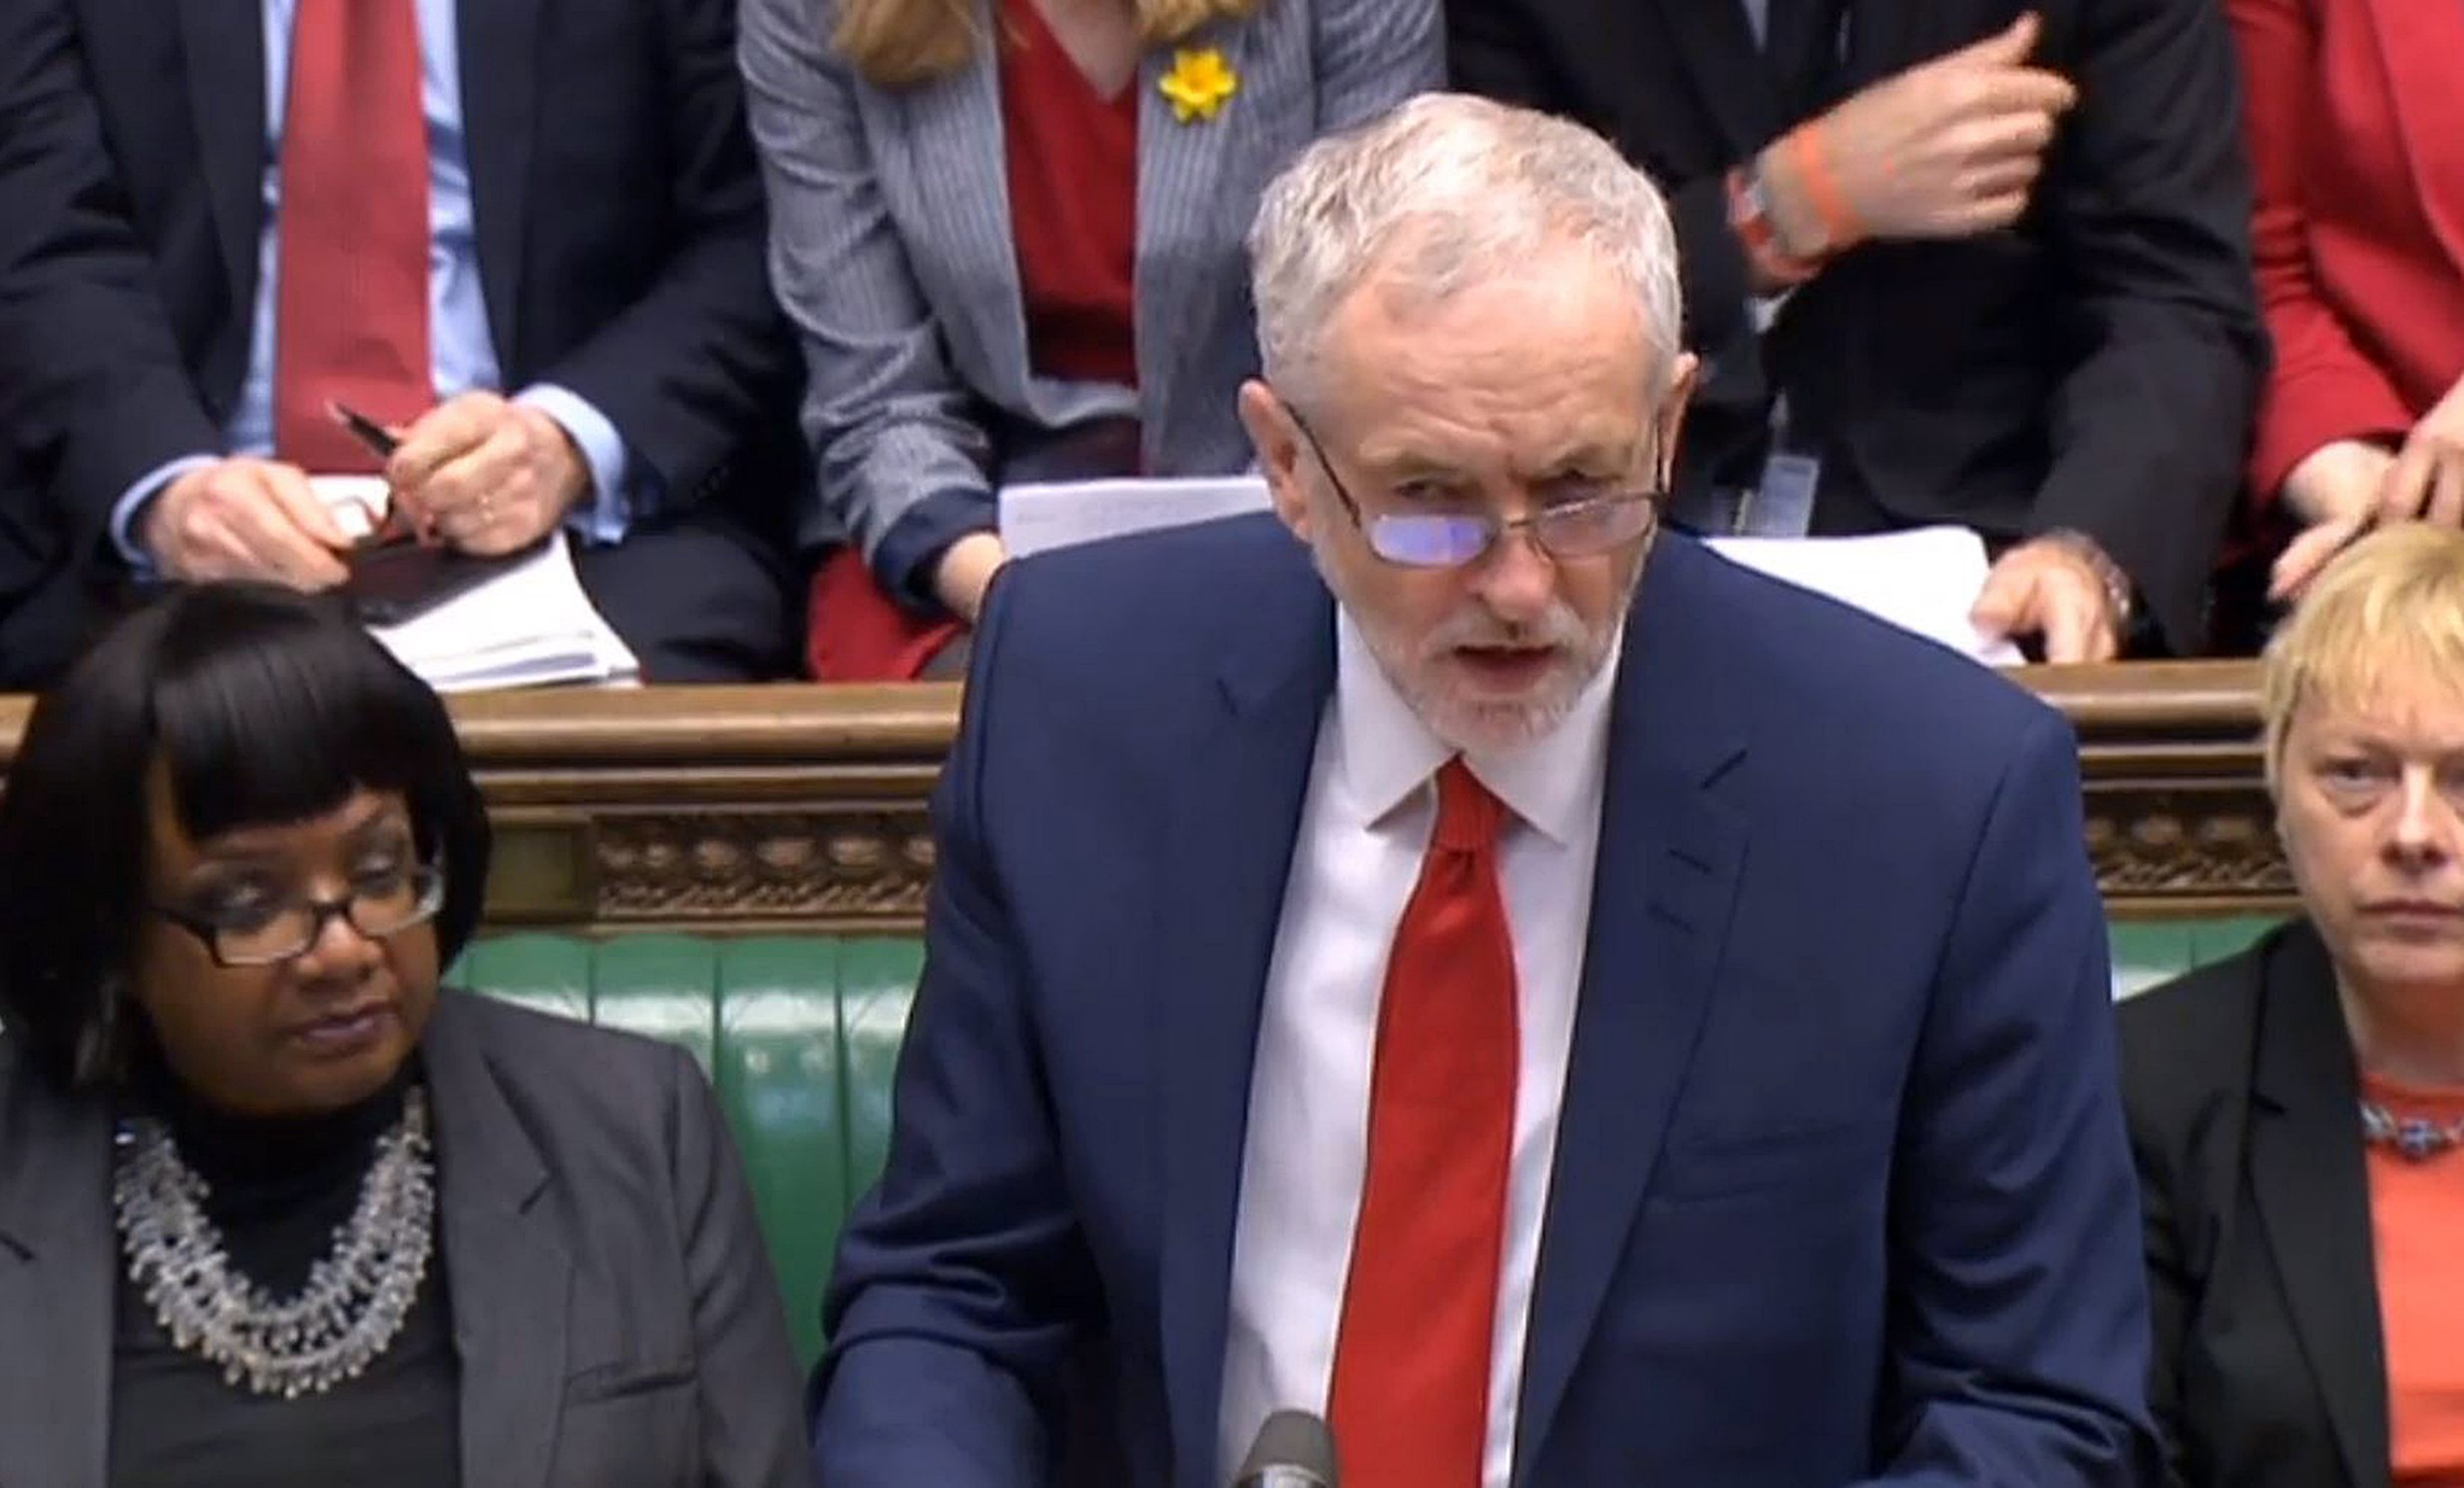 Labour party leader Jeremy Corbyn speaks during Prime Minister's Questions in the House of Commons, London. PRESS ASSOCIATION Photo. Picture date: Wednesday March 16, 2016. See PA story POLITICS PMQs Corbyn. Photo credit should read: PA Wire